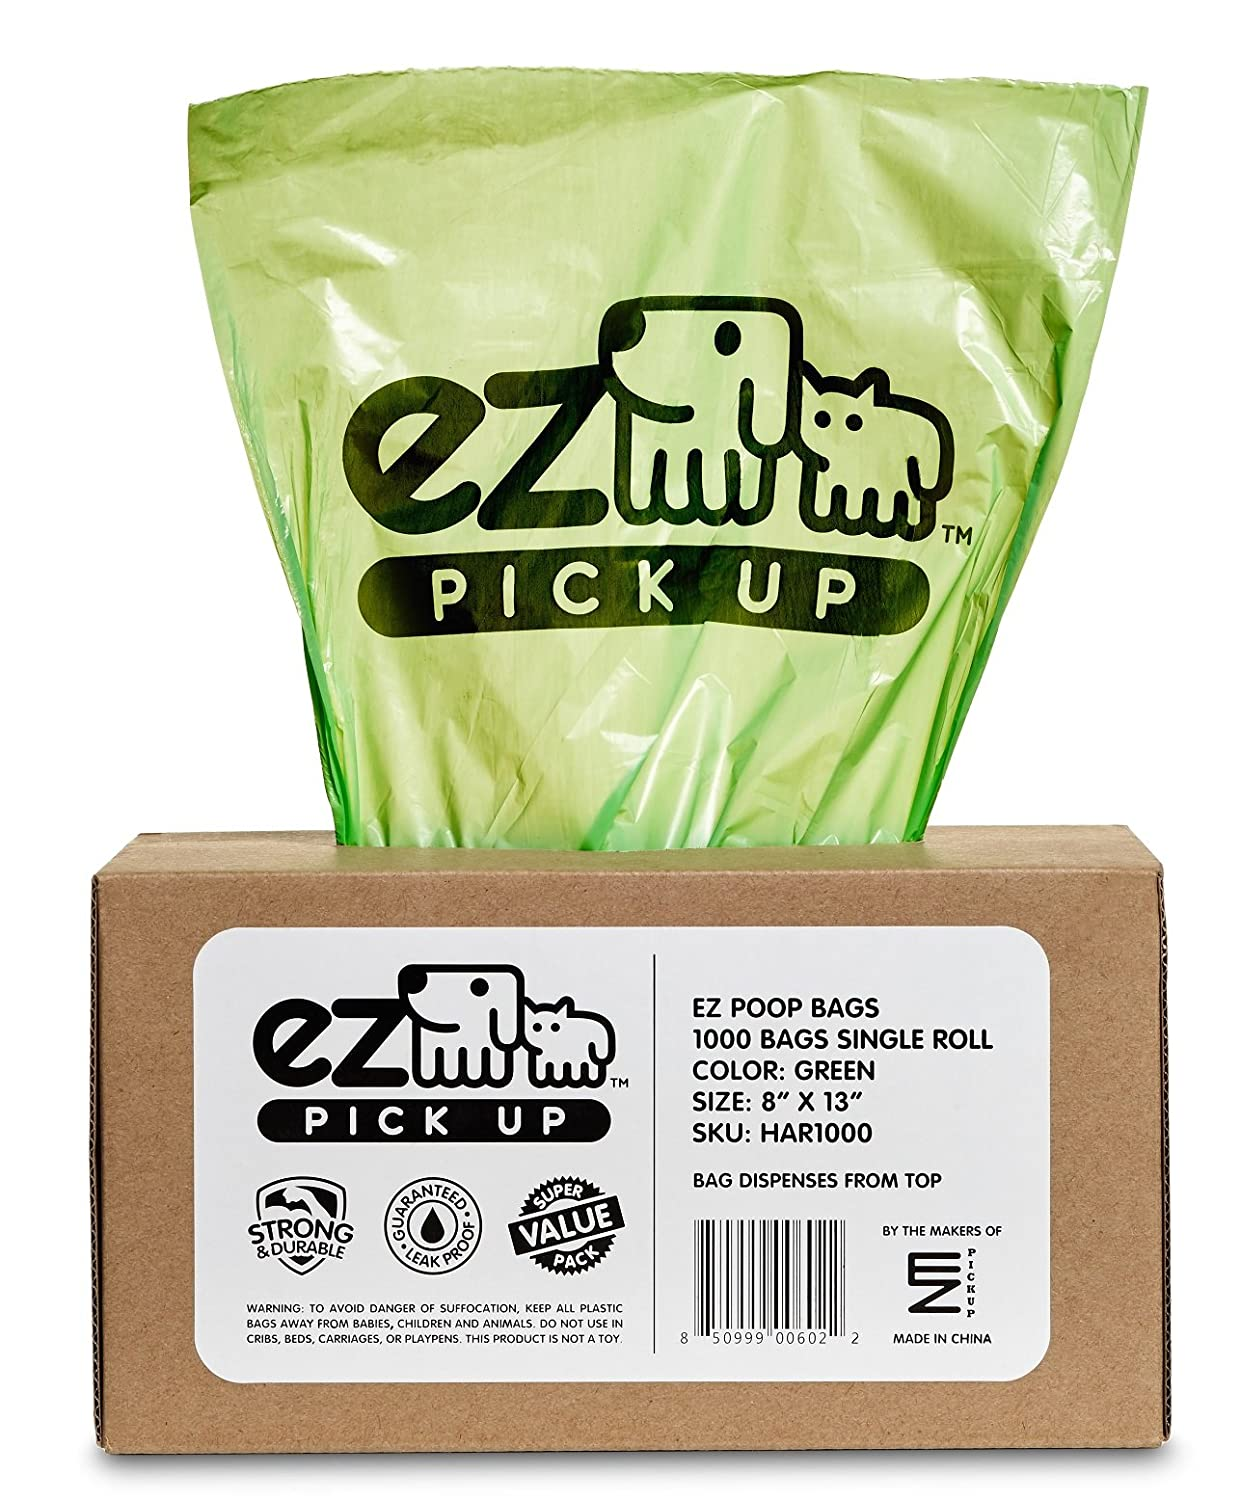 Amazon com   1000 Pet Waste Disposal Dog Poop Bags  EZ Pickup Bags Green   single roll  not on small rolls    Pet SuppliesAmazon com   1000 Pet Waste Disposal Dog Poop Bags  EZ Pickup Bags  . Roll Top Bath Waste Problems. Home Design Ideas